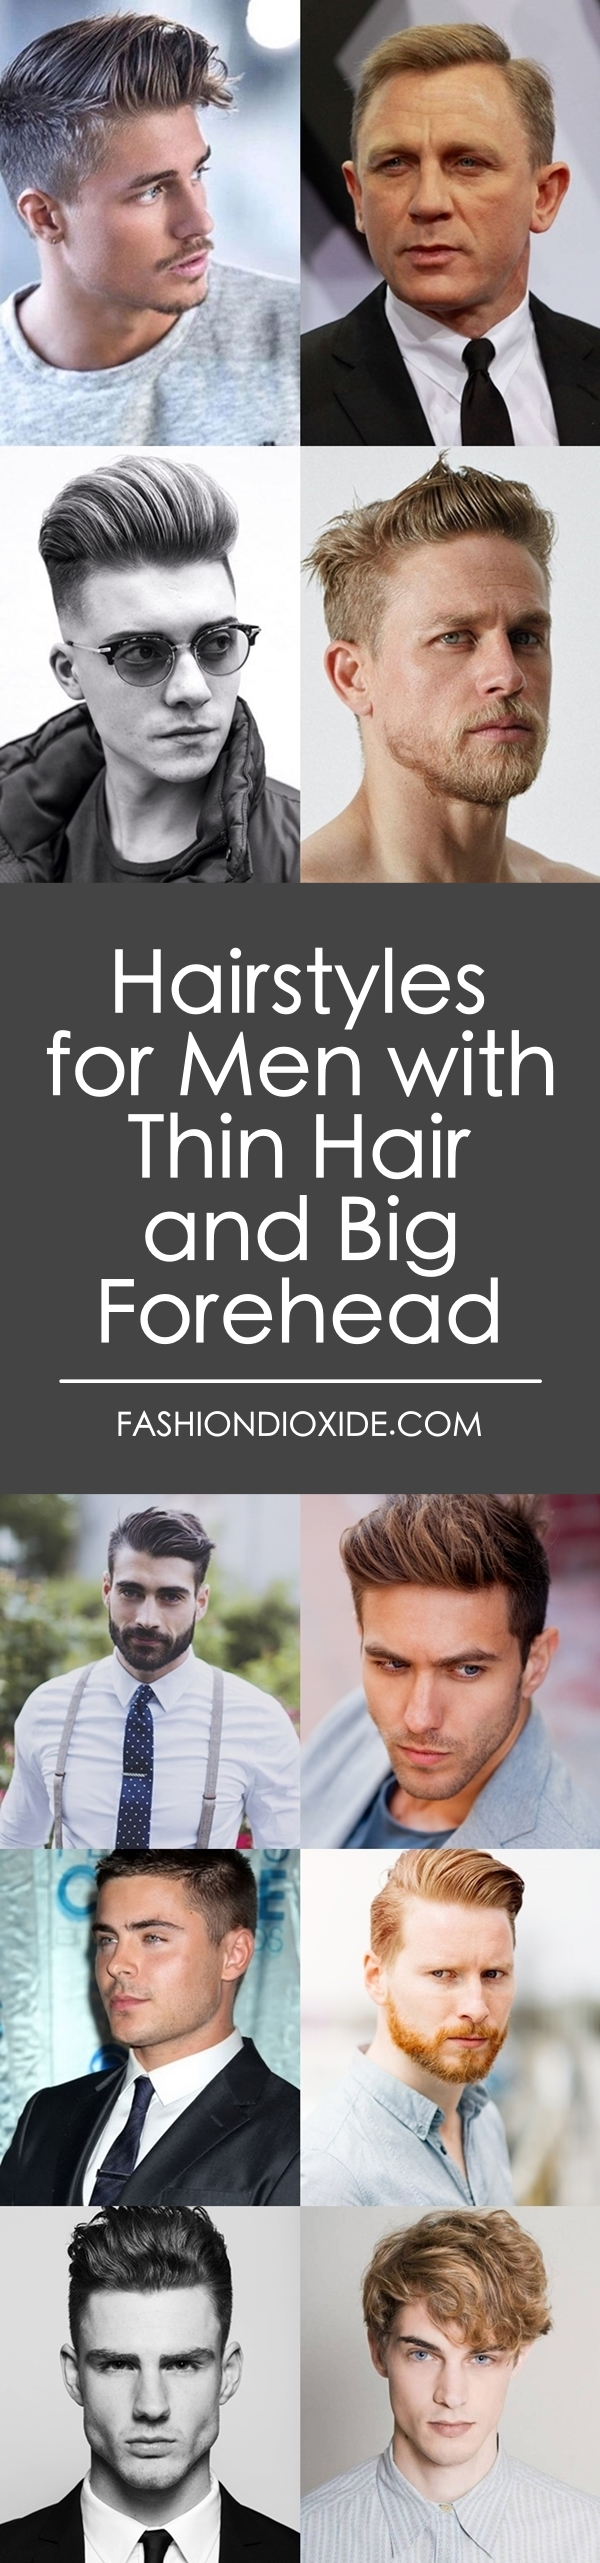 Hairstyles for Men with Thin Hair and Big Forehead